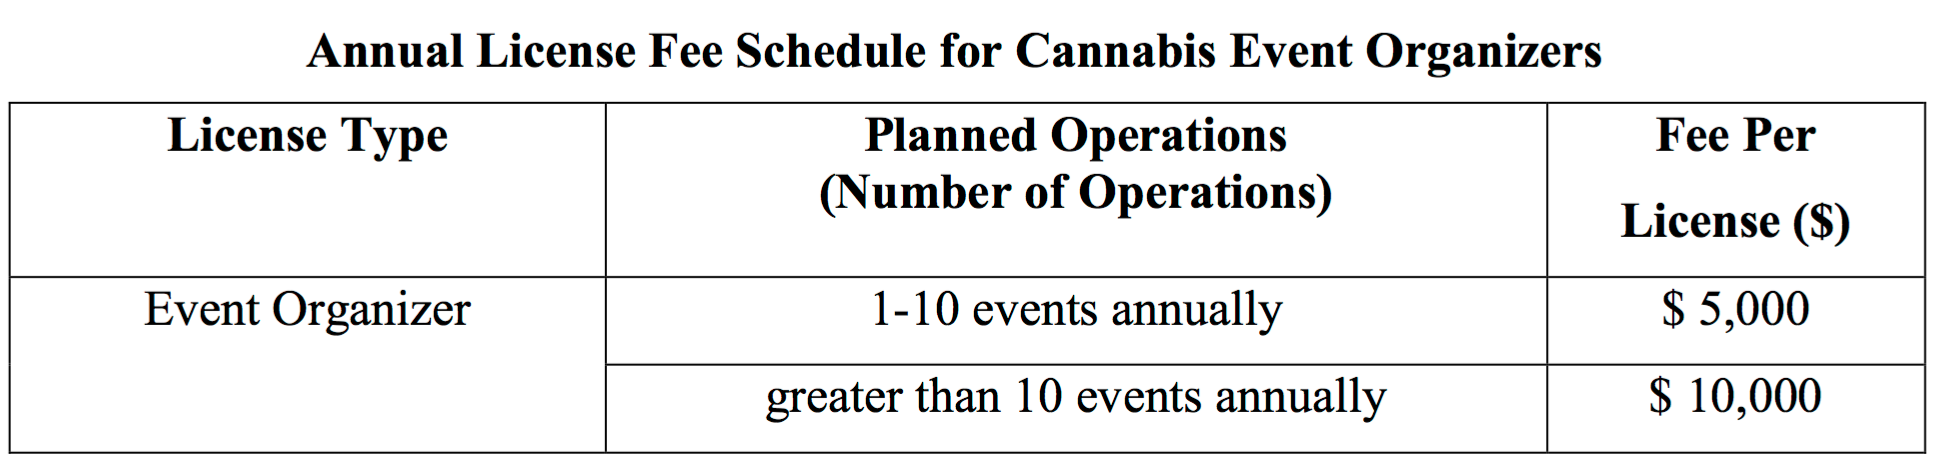 cannabis event licensing fees